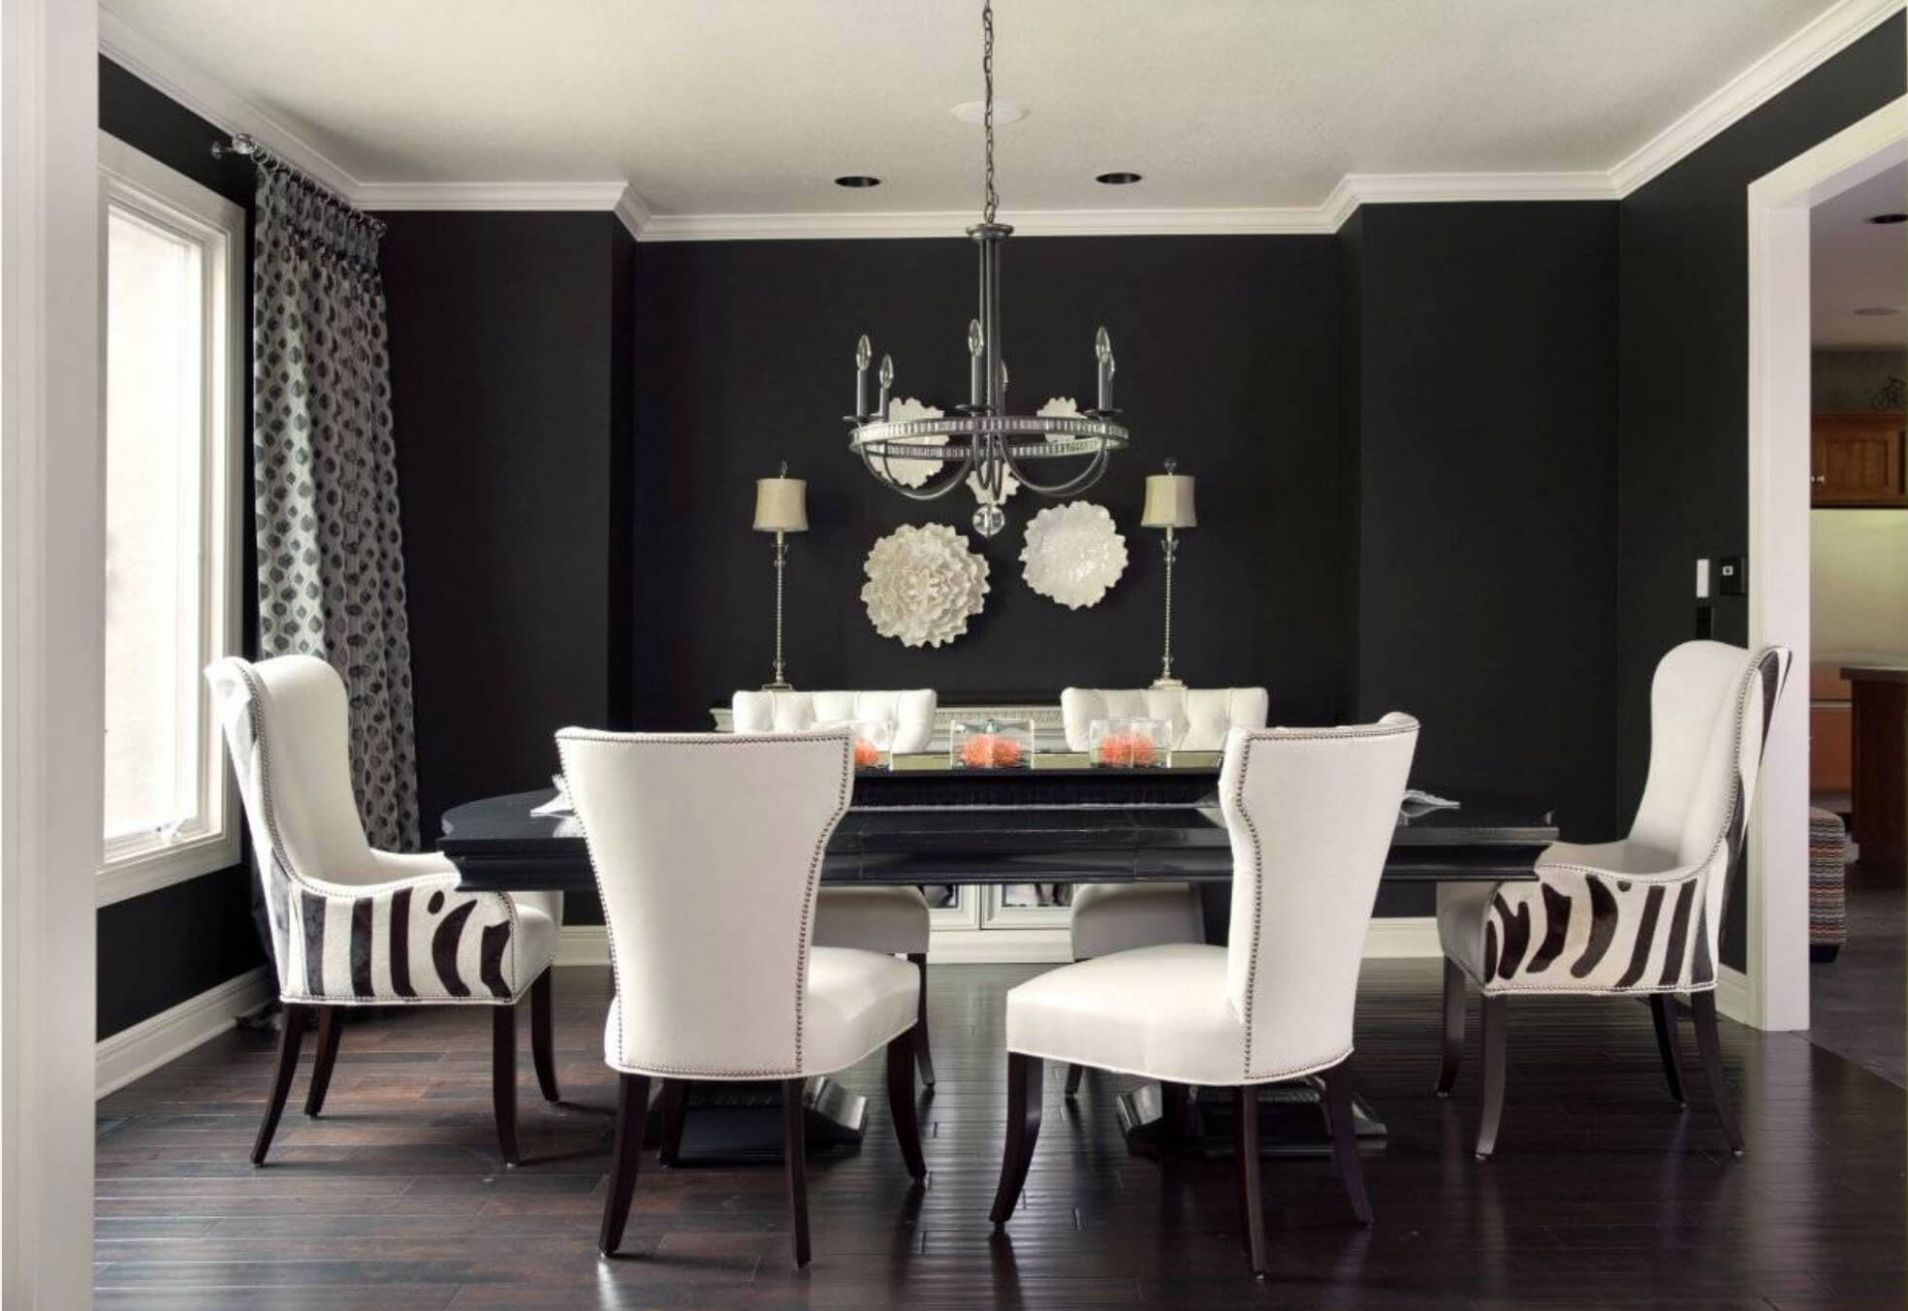 8 Creative Ideas for Dining Room Walls | Freshome